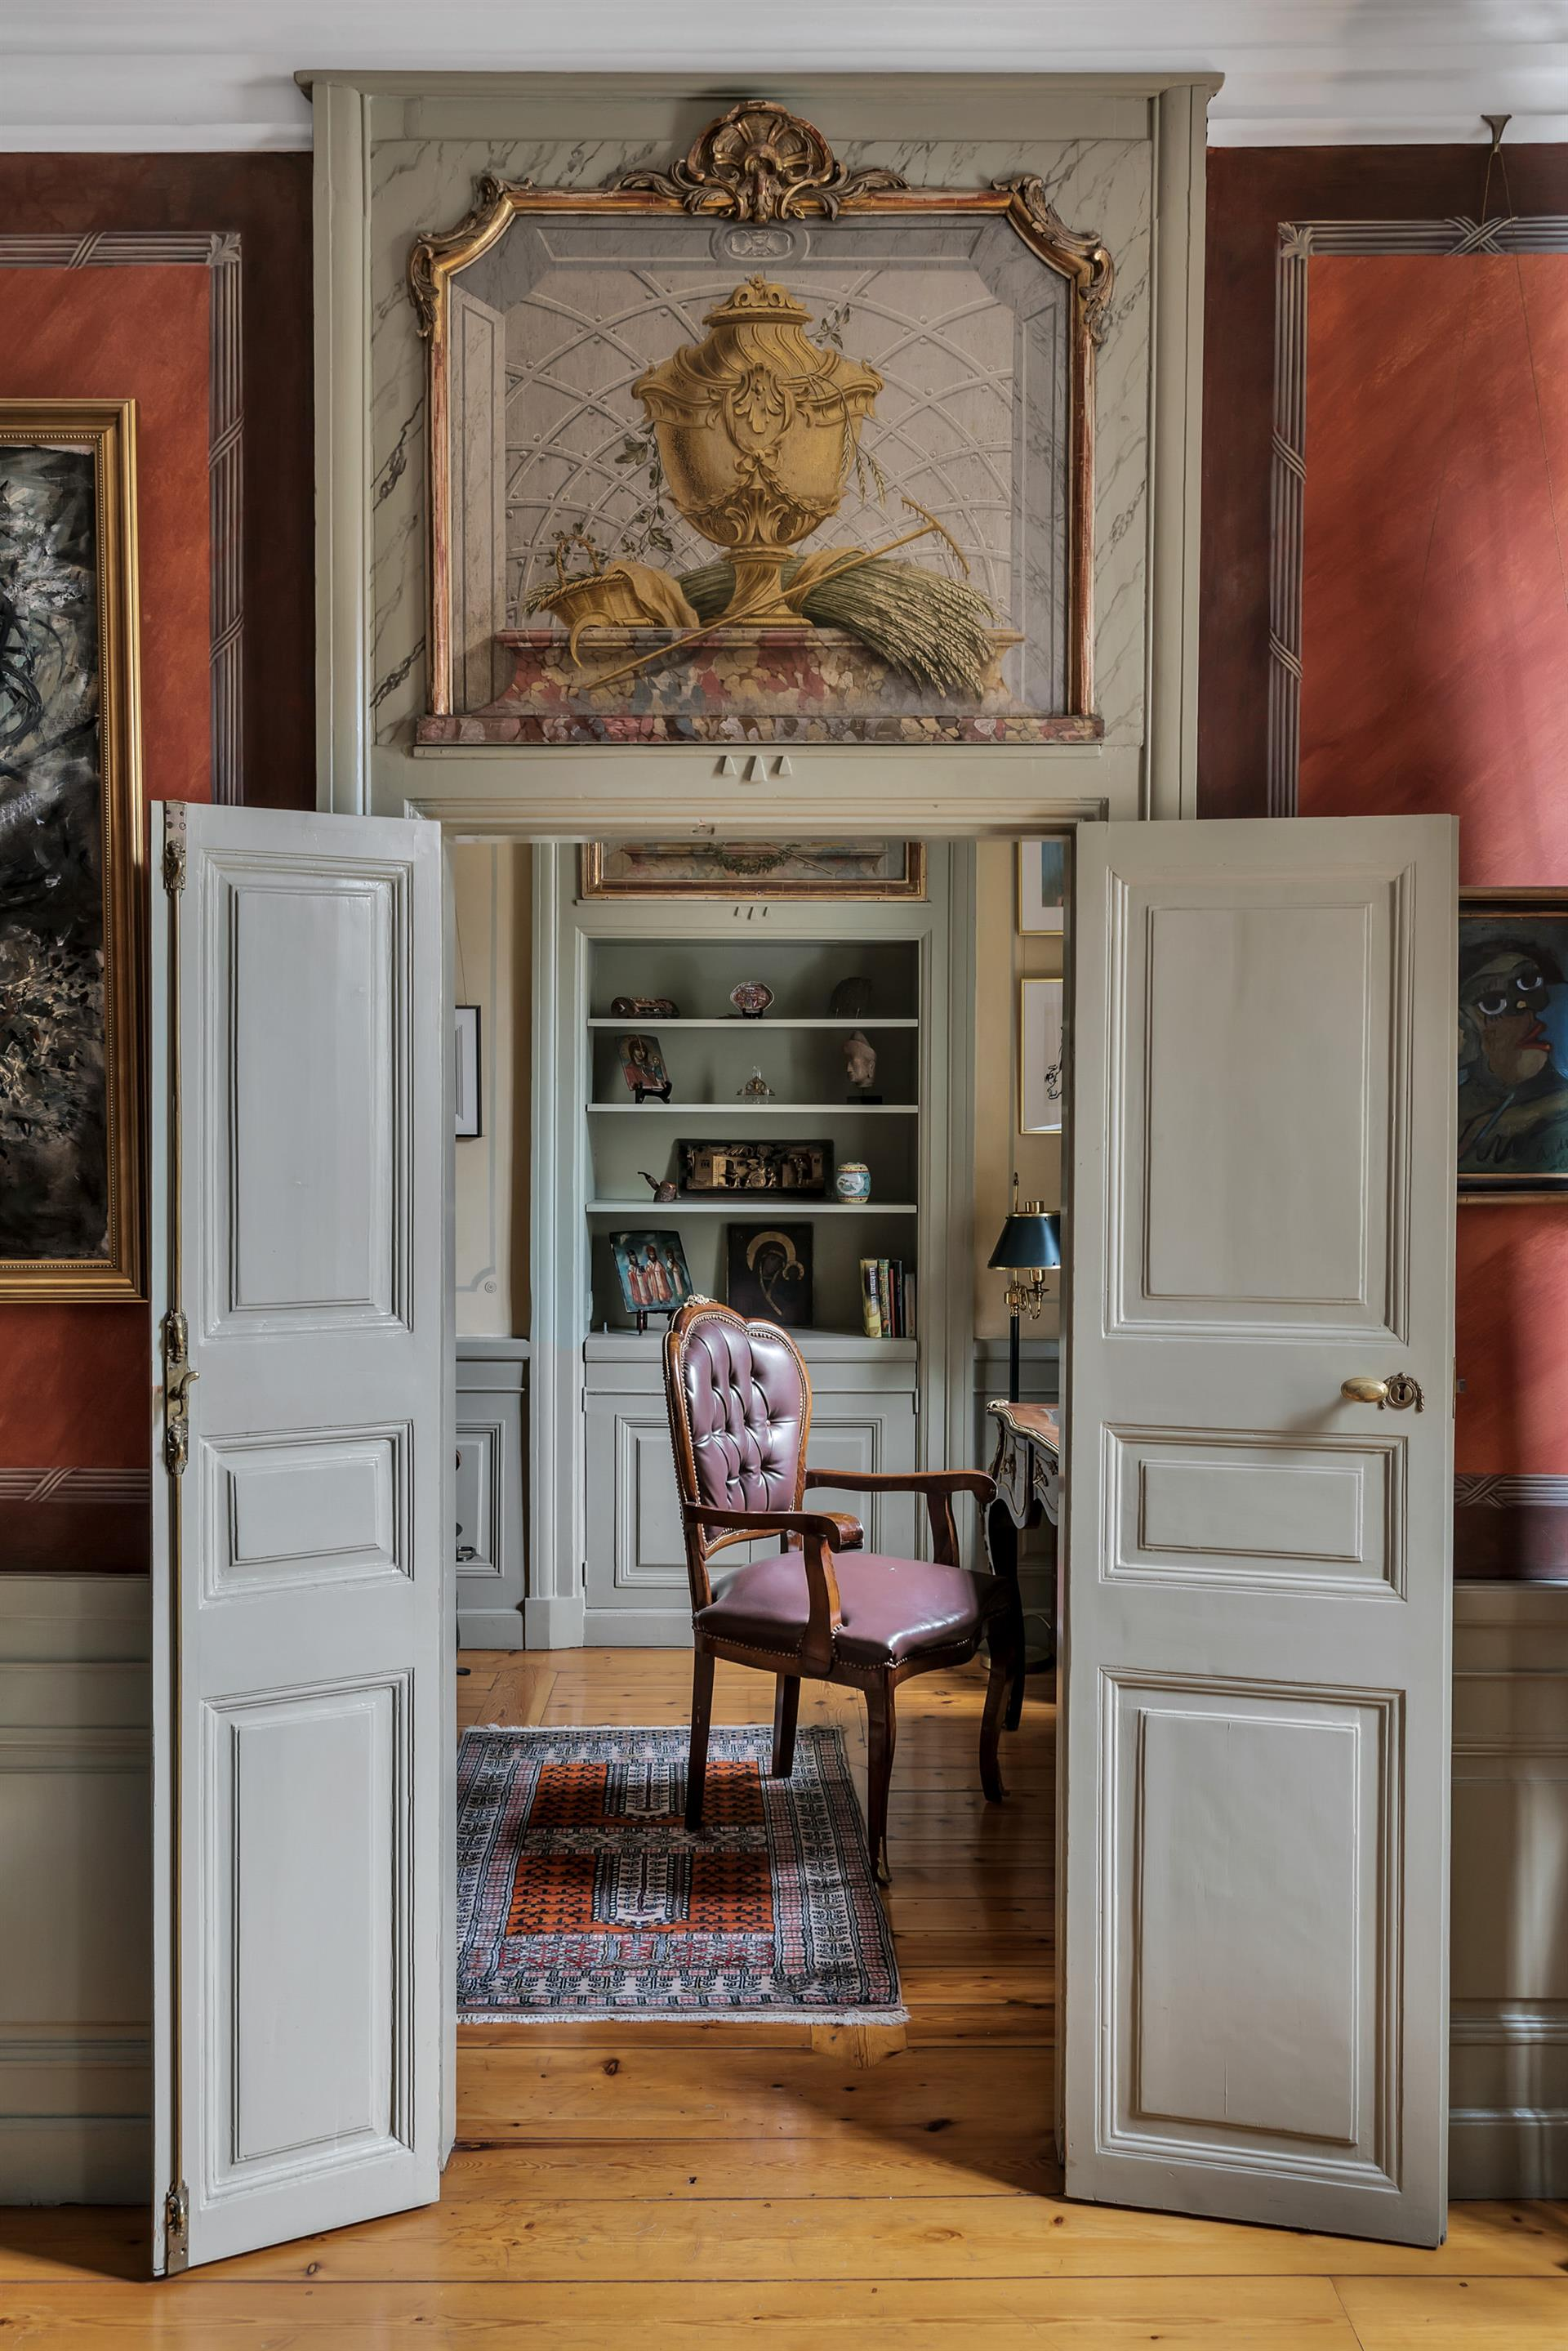 Stockholm Old Town: a luxury home for sale in Stockholm ...